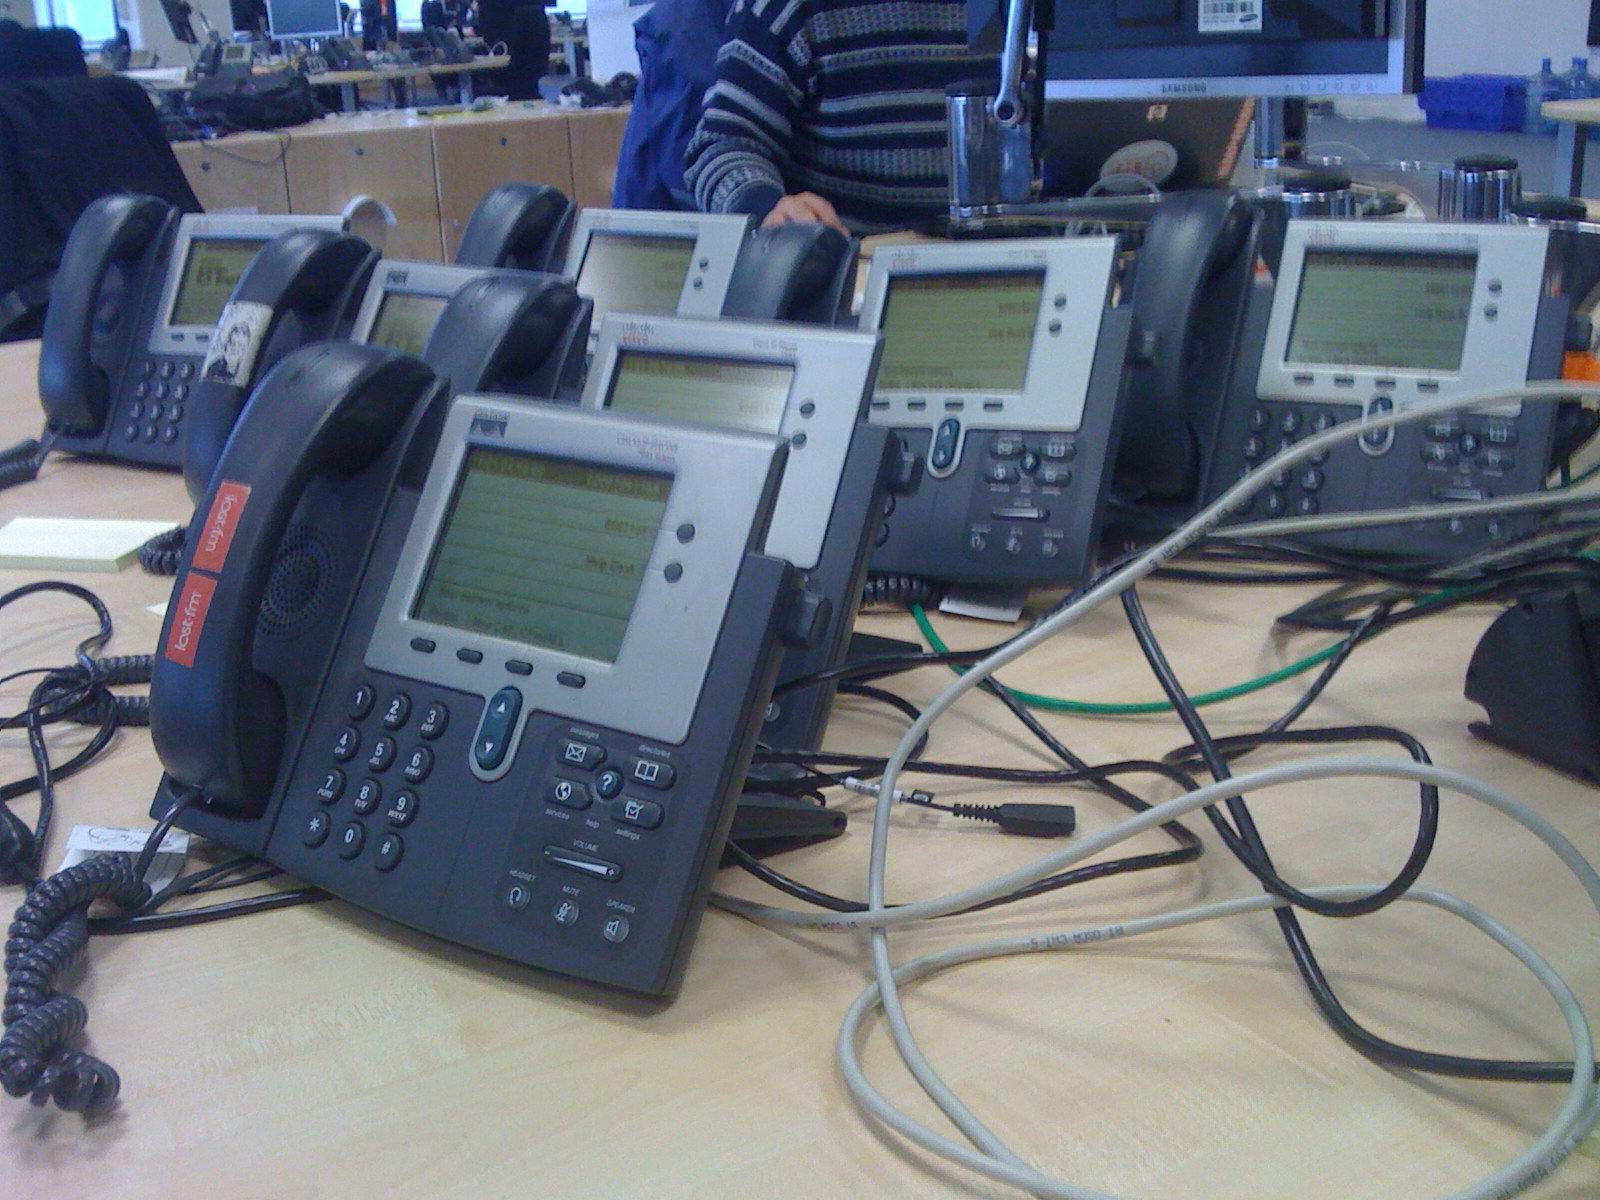 Telephony resilience can get businesses off the hook